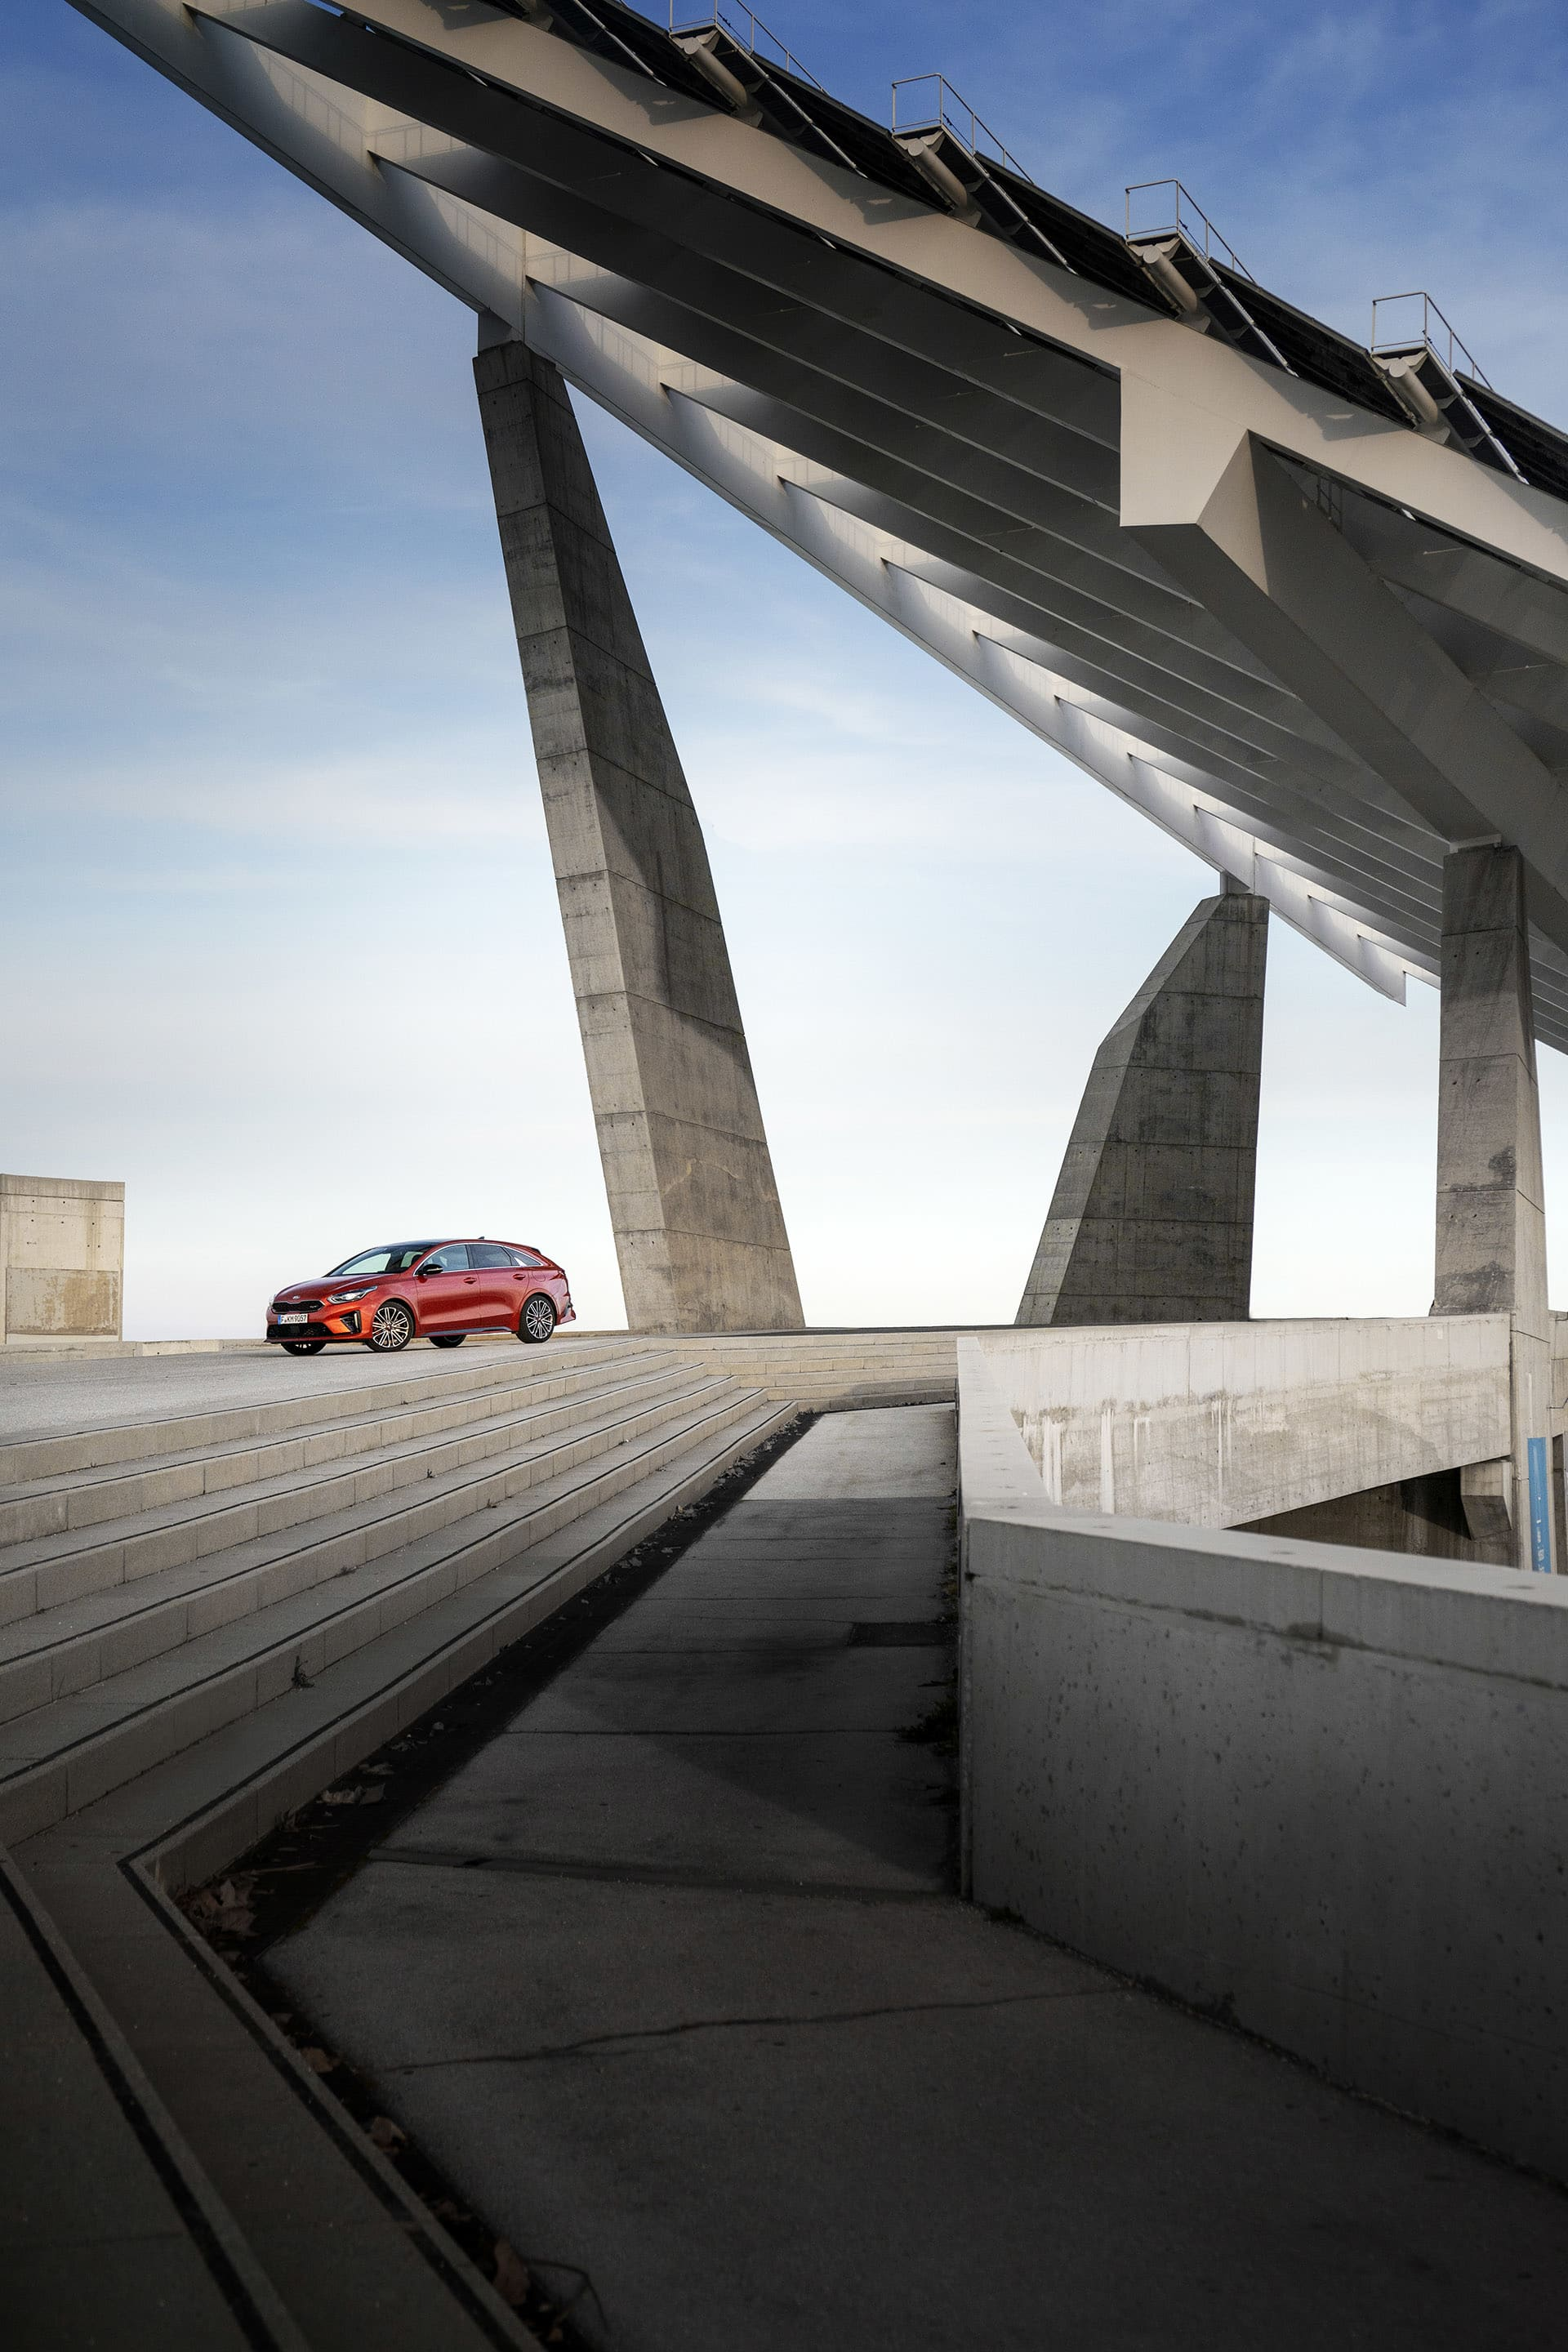 For one day I was allowed to enjoy the new Kia Proceed with the stunning architecture of Barcelona as a backdrop.